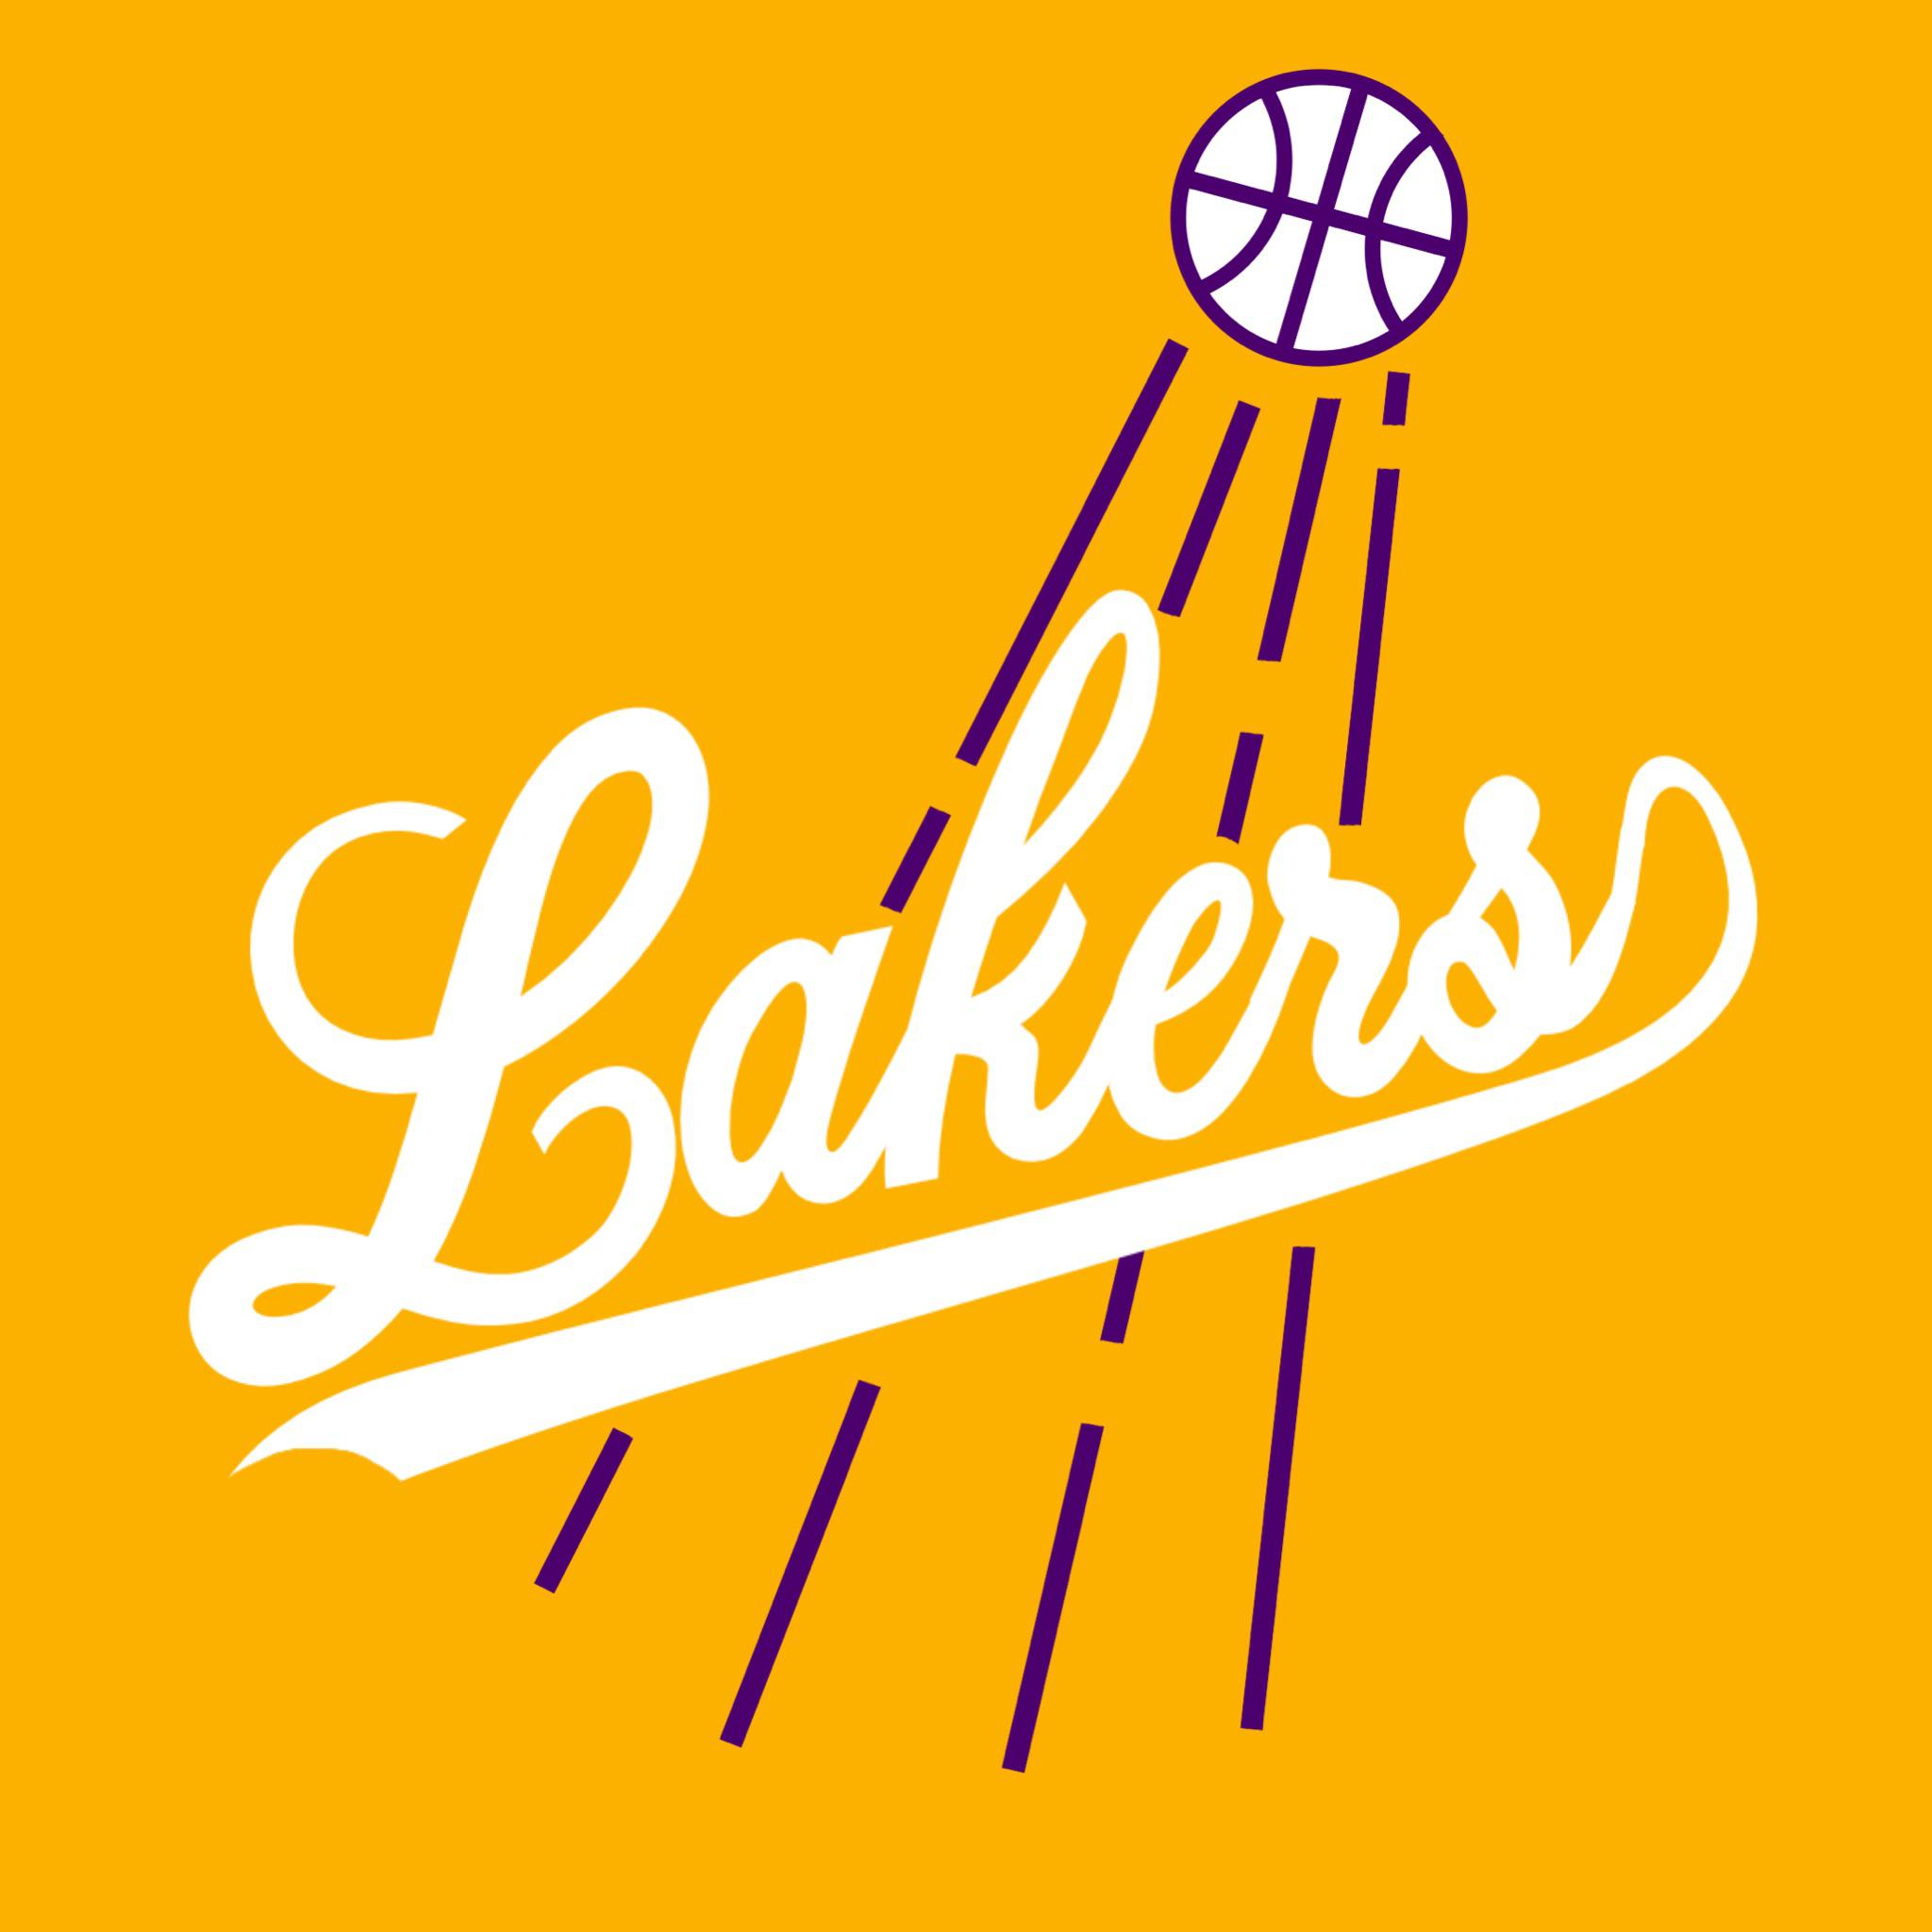 Lakers logo in the style of the Dodgers logo : Dodgers.